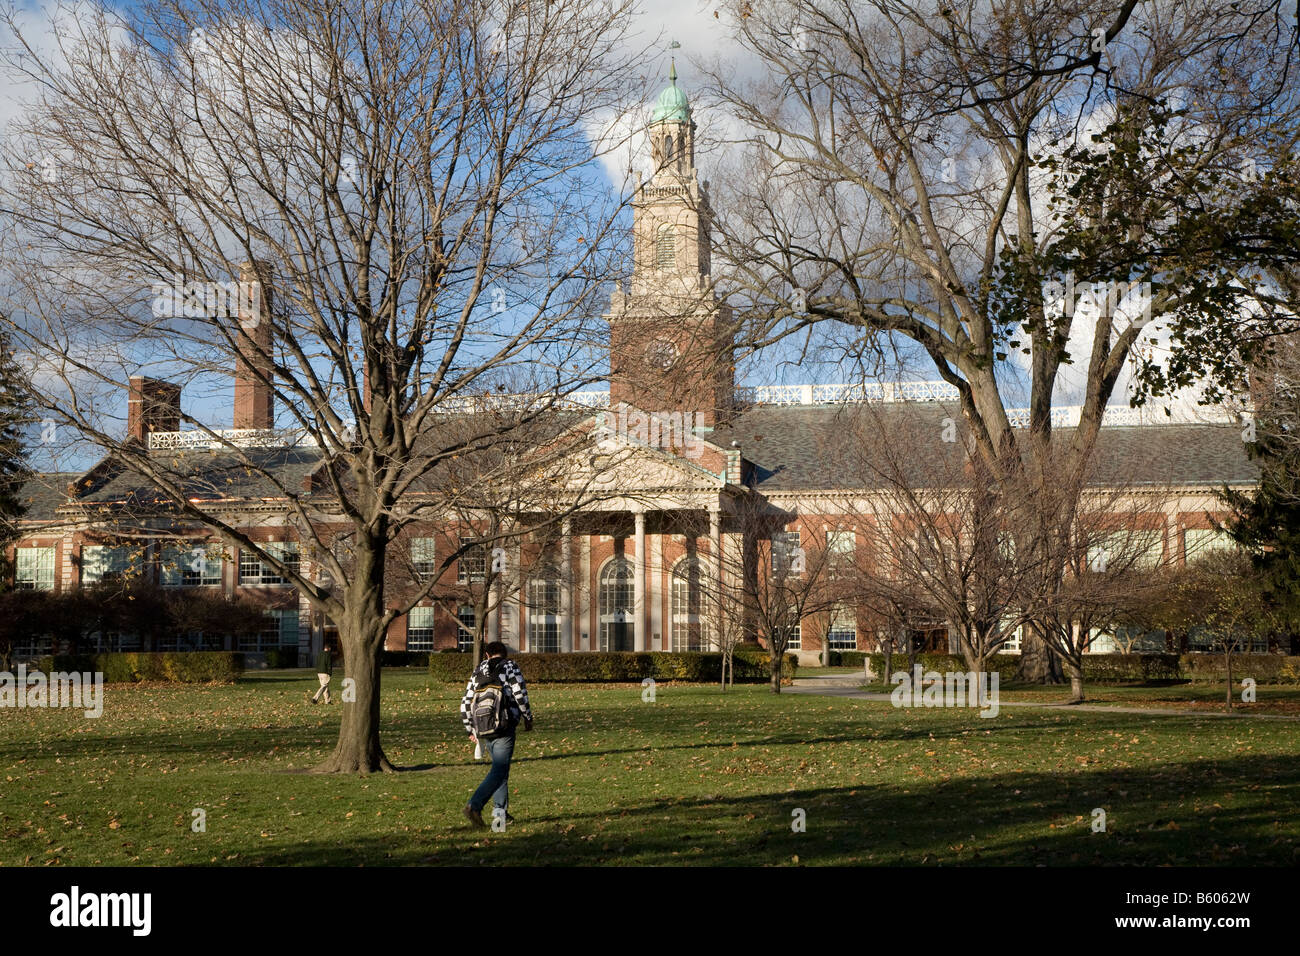 Grosse Pointe Farms Michigan Grosse Pointe South High School - Stock Image